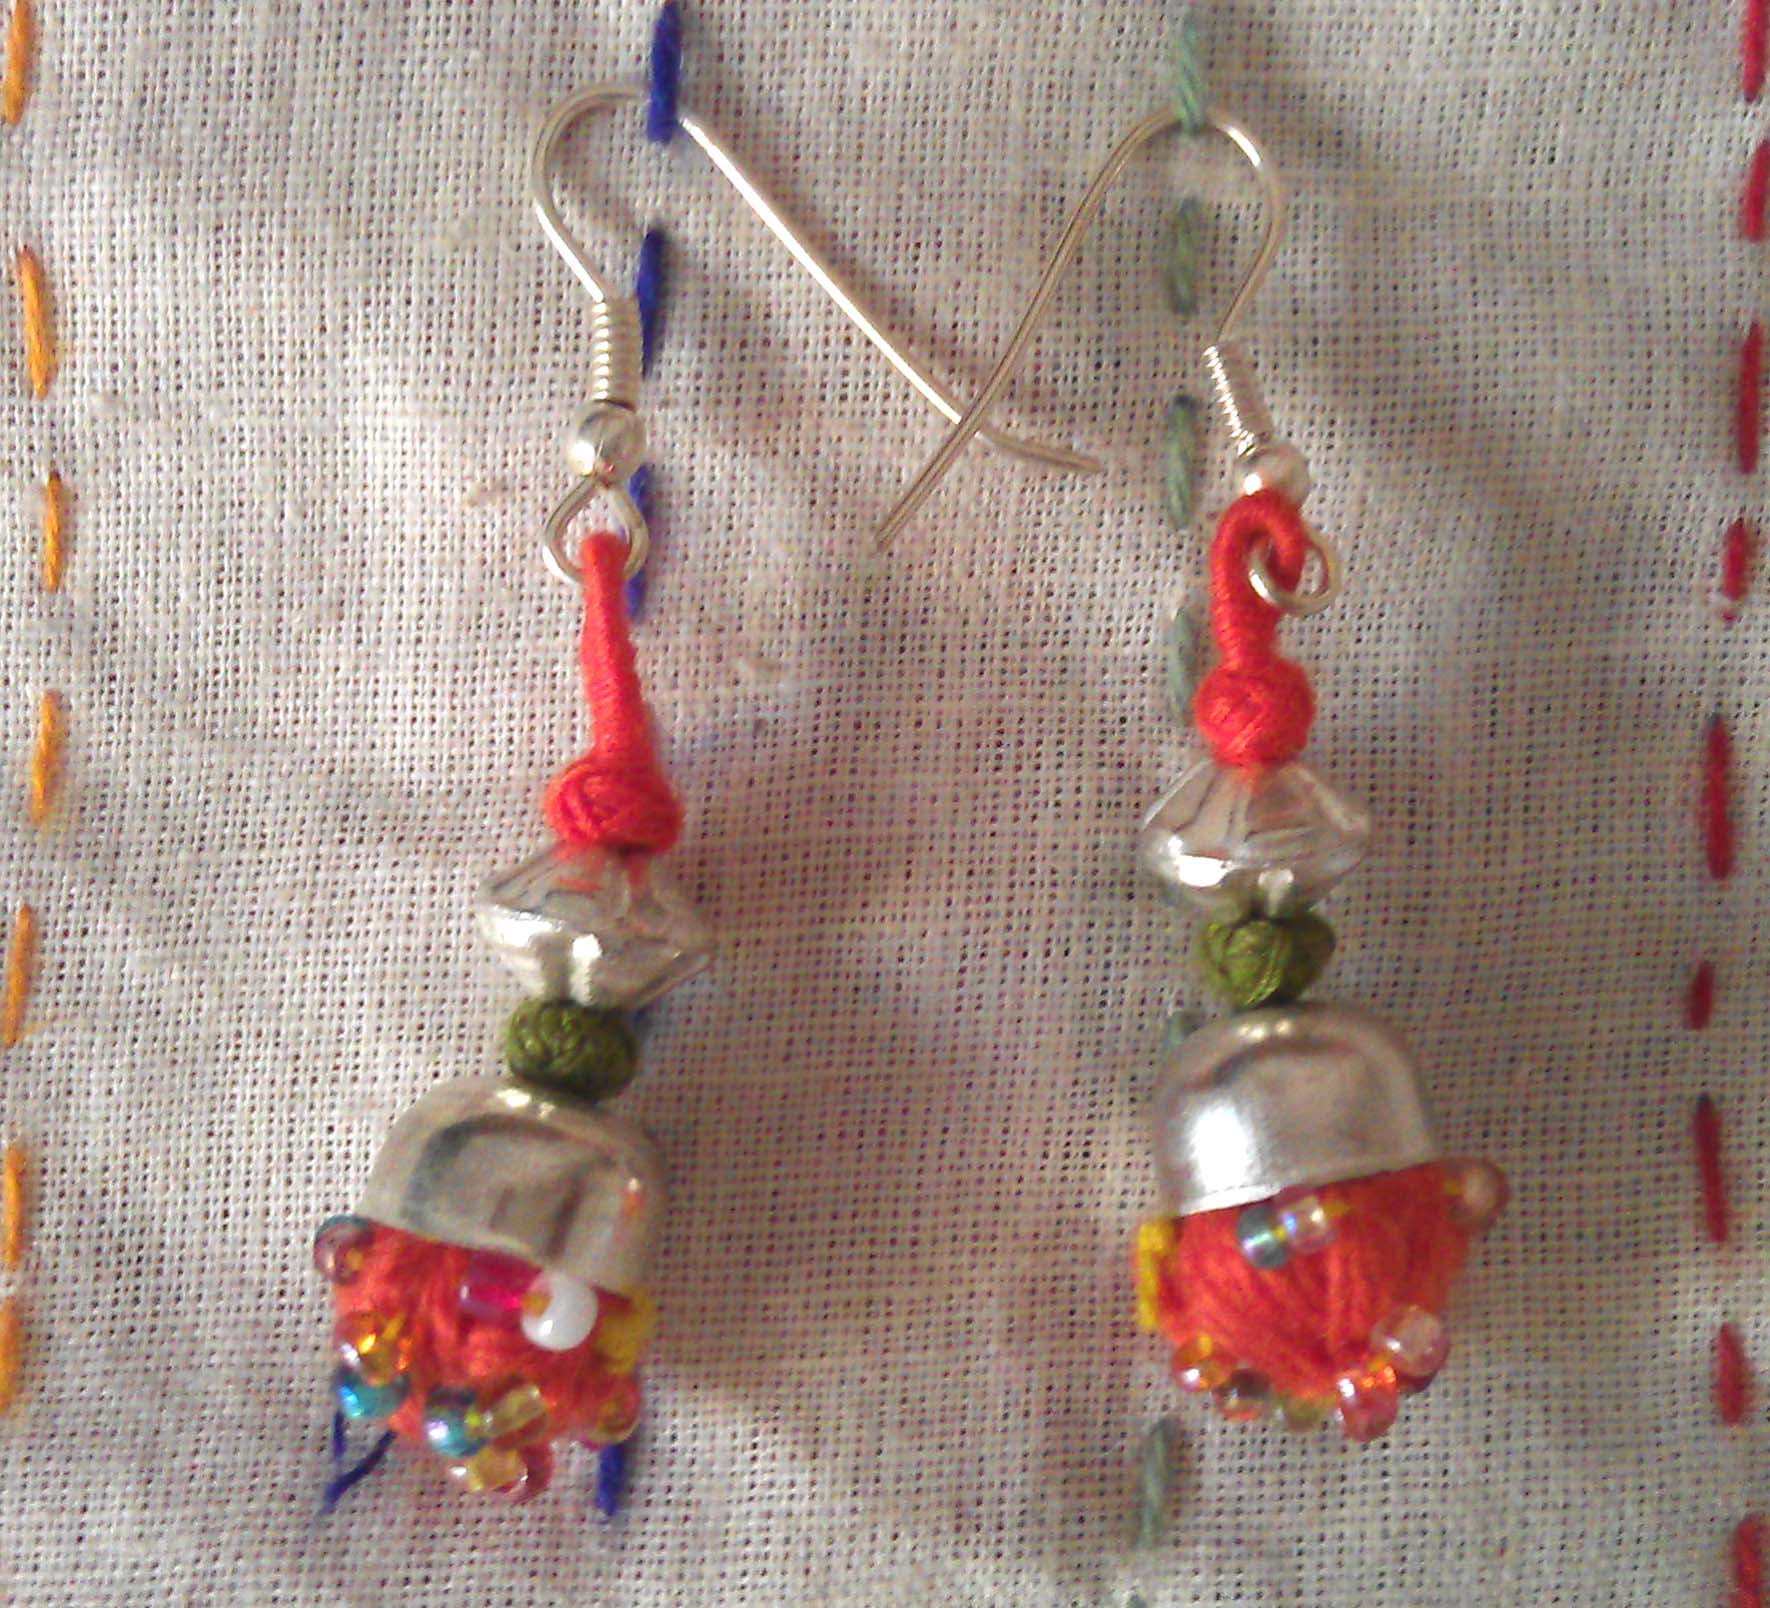 bay yg spirited s si vim radiant wear bays work gh earrings